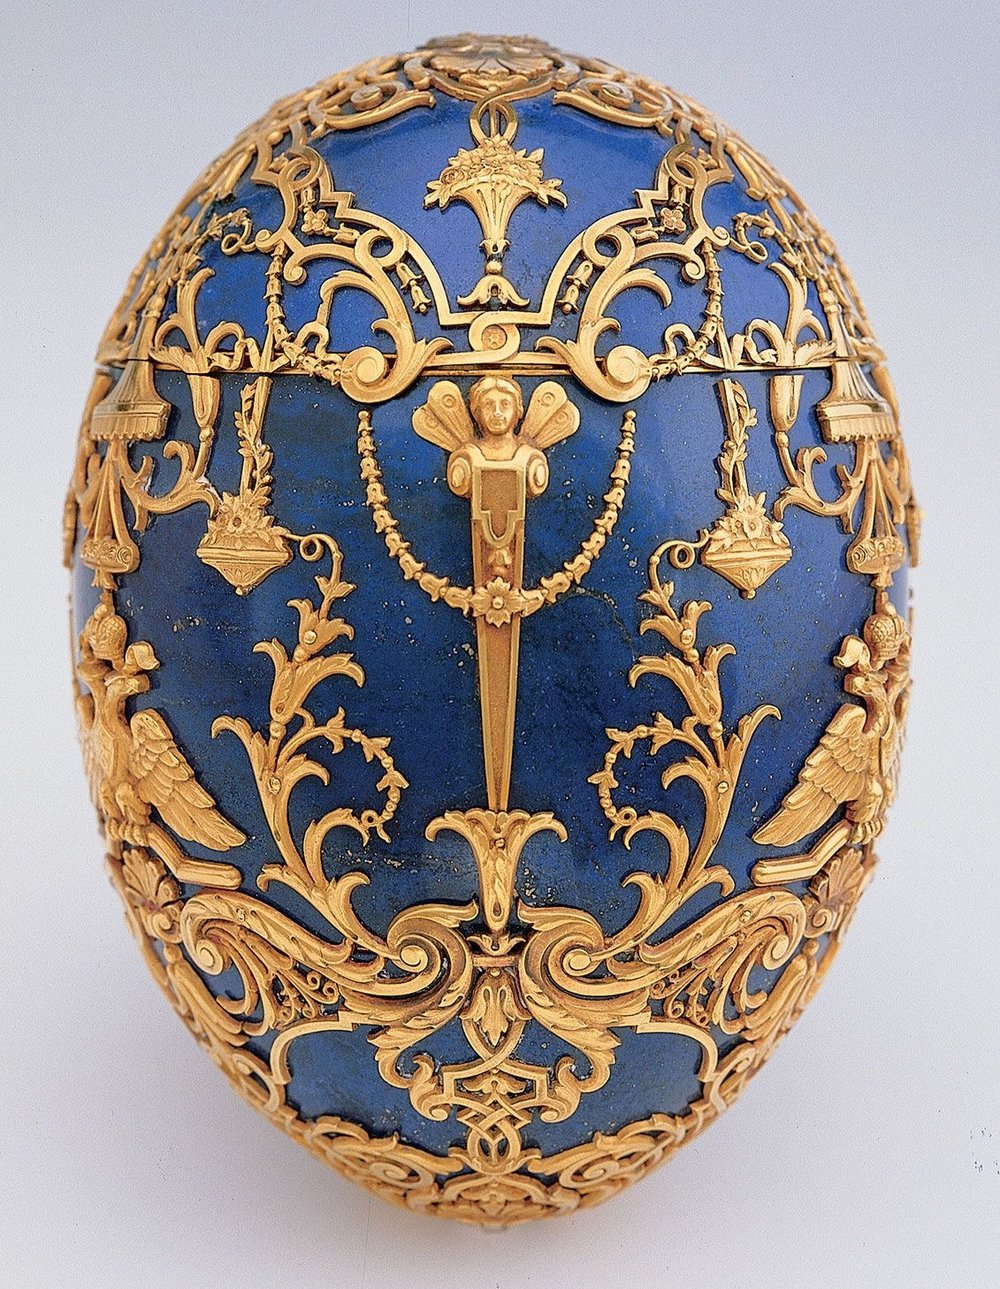 Nicholas II's son, Alexei, had hemophilia and nearly died from it in 1912. The Tsesarevich Easter Egg was commissioned to celebrate his victory over the illness after the worrisome year.